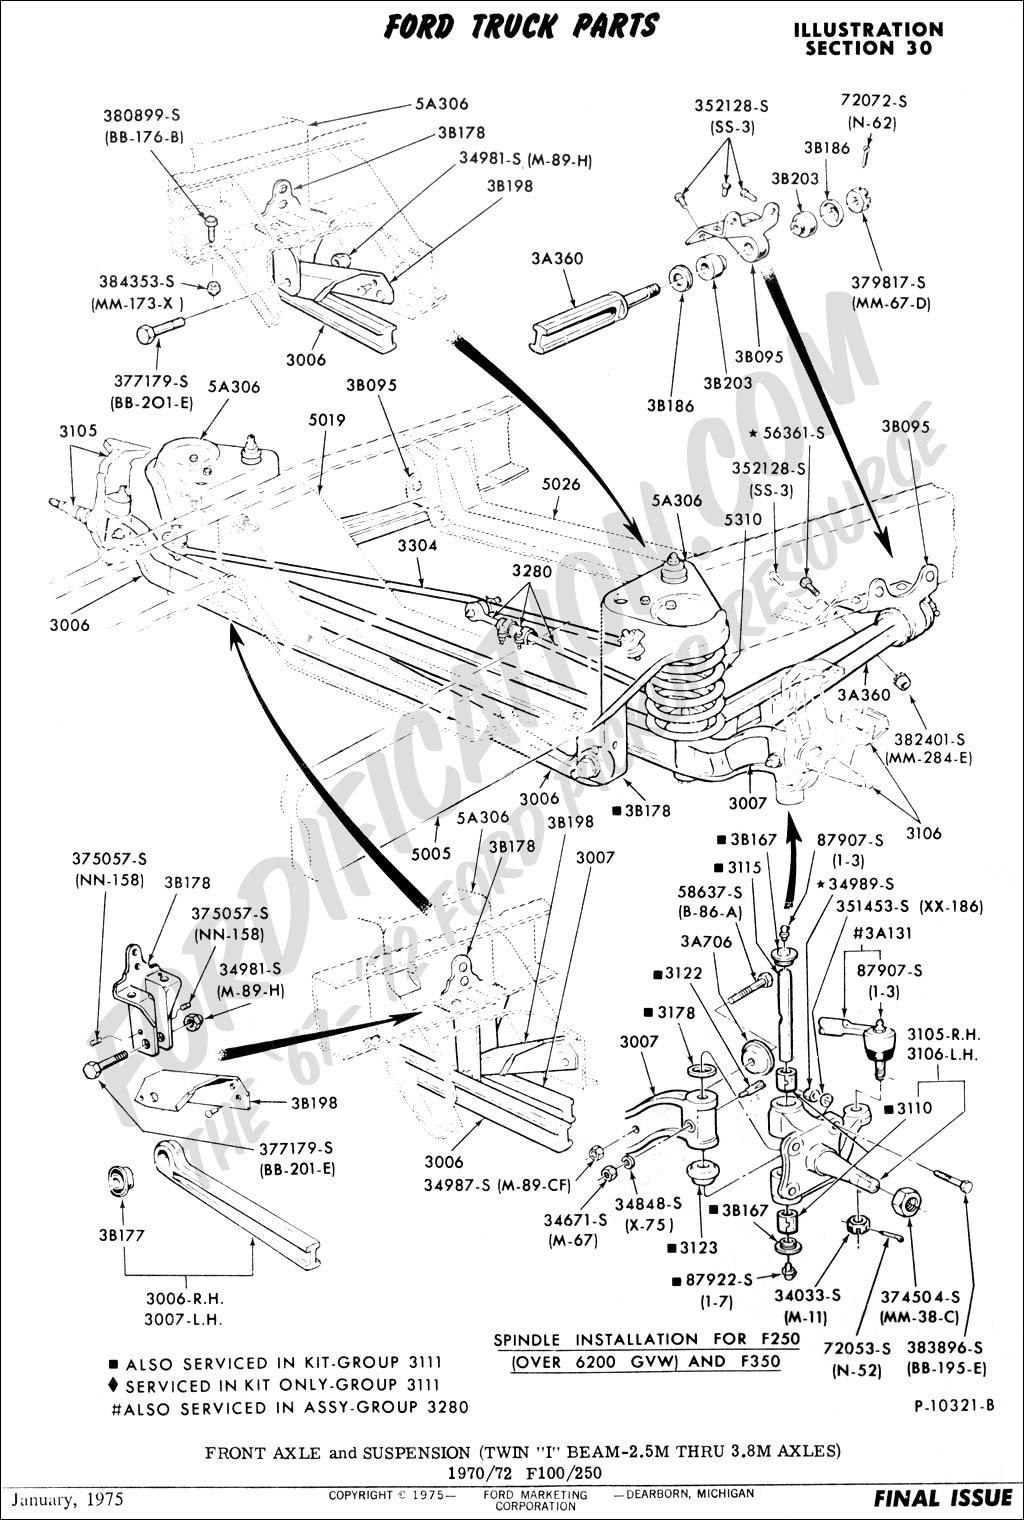 Ford F 250 Front Suspension Diagram Schematics 95 Fuse Box Truck Technical Drawings And Section A Panel